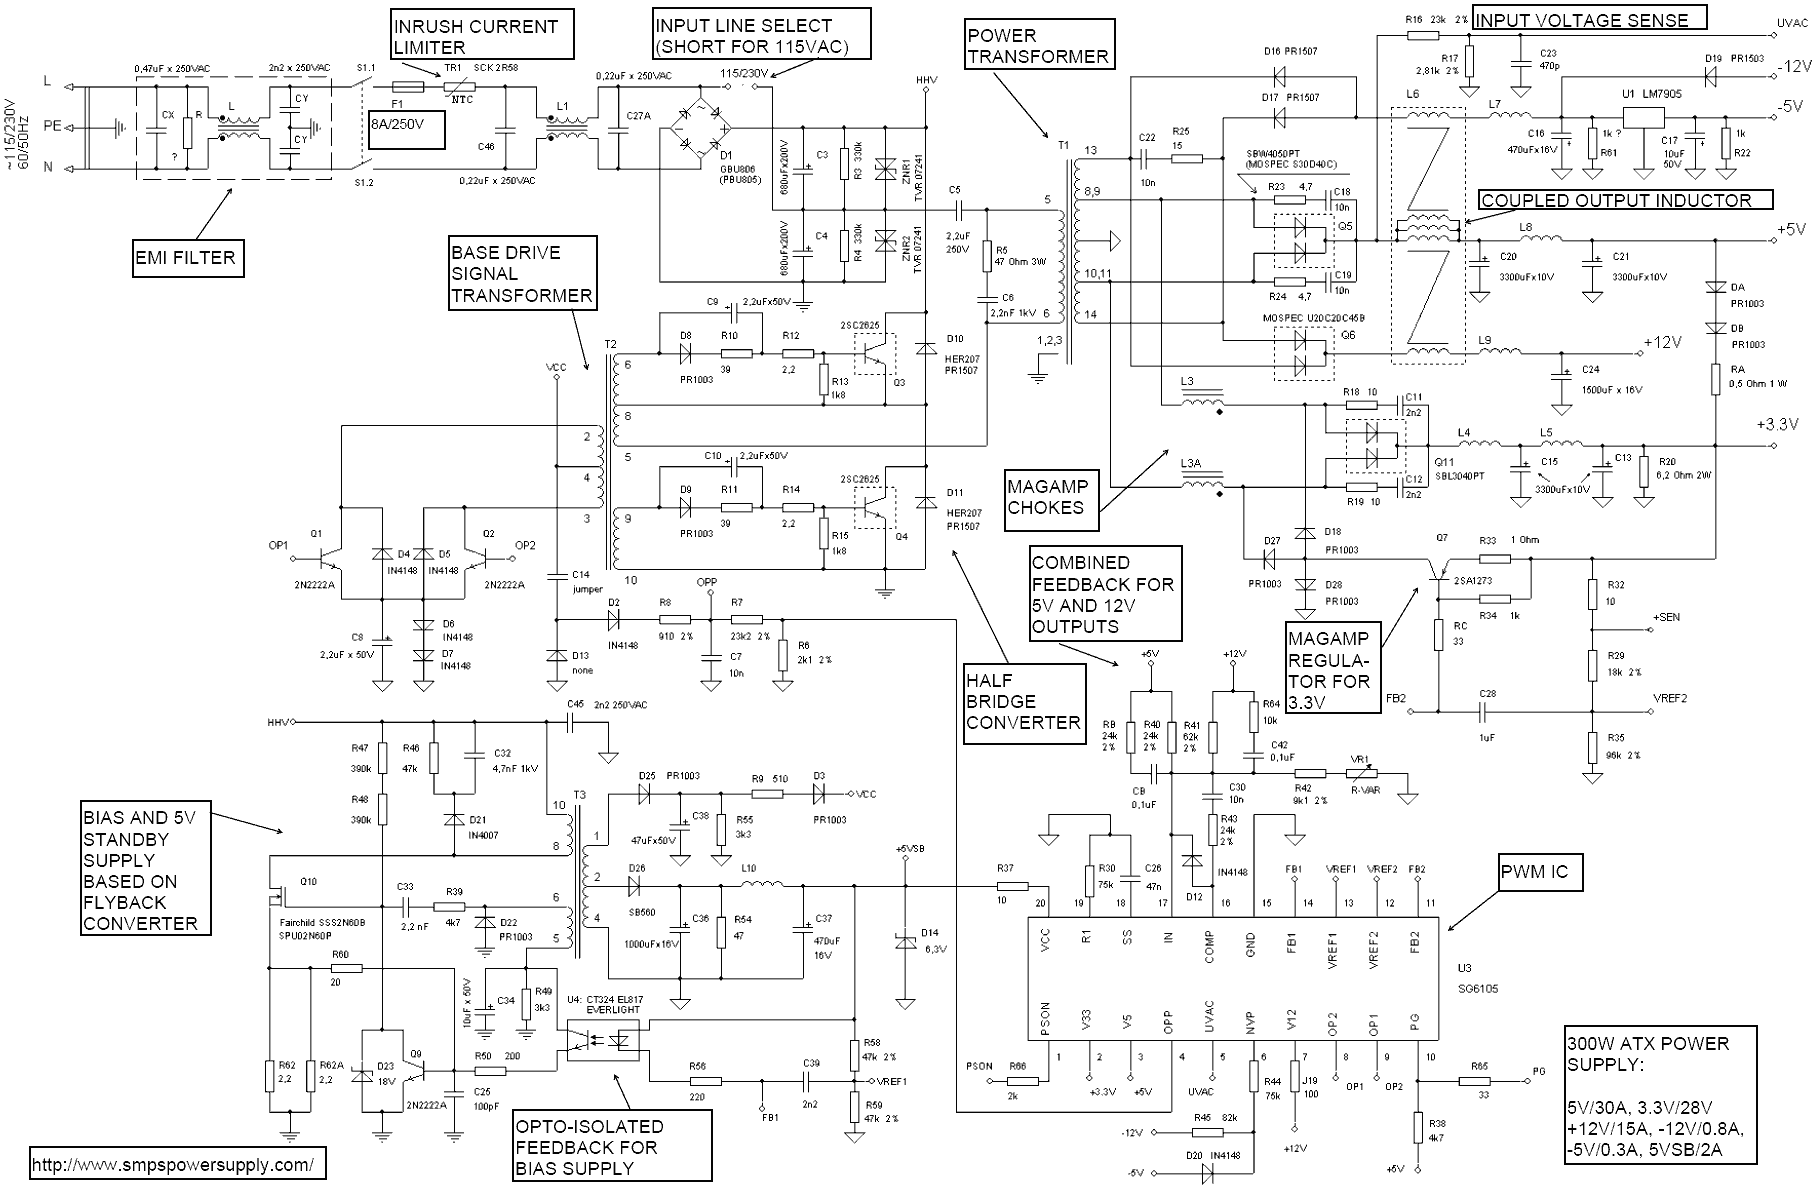 symbols ravishing and atx computer supplies schematics circuit diagram power supply satxd schematic of a [ 1816 x 1192 Pixel ]